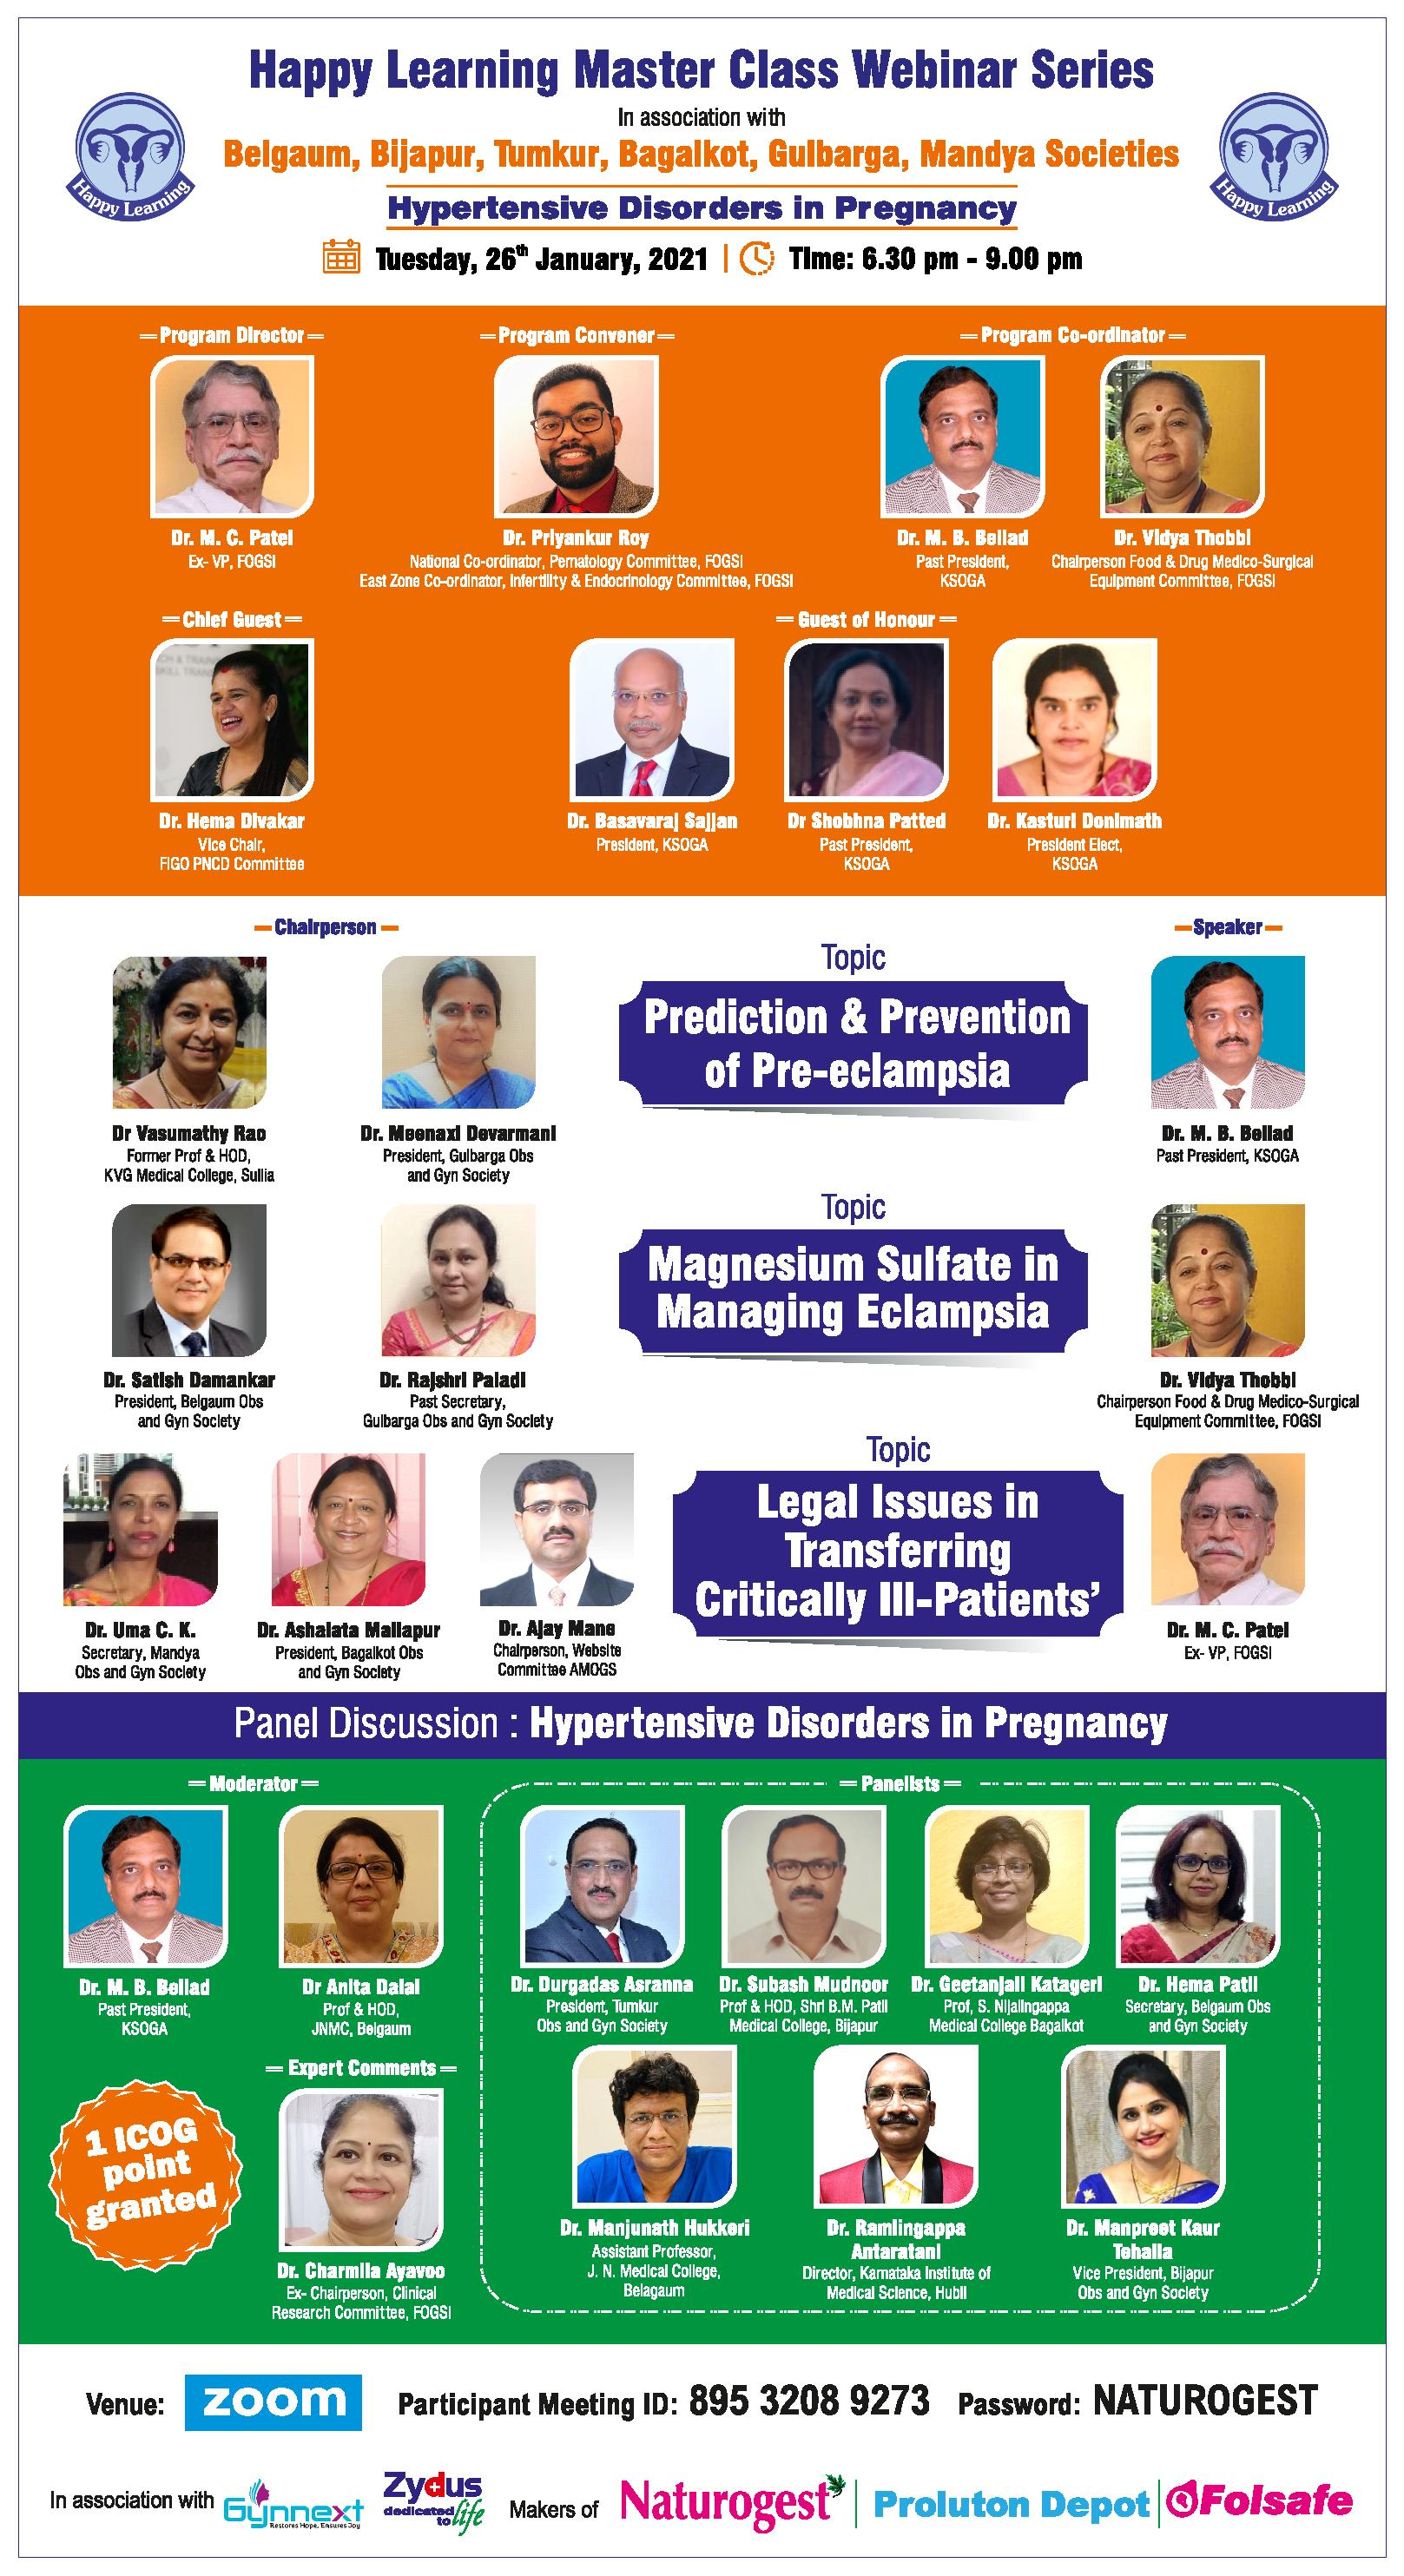 Dr Hema Divakar invited as the Guest of Honor for the 'Happy Learning Master Class Webinar Series'